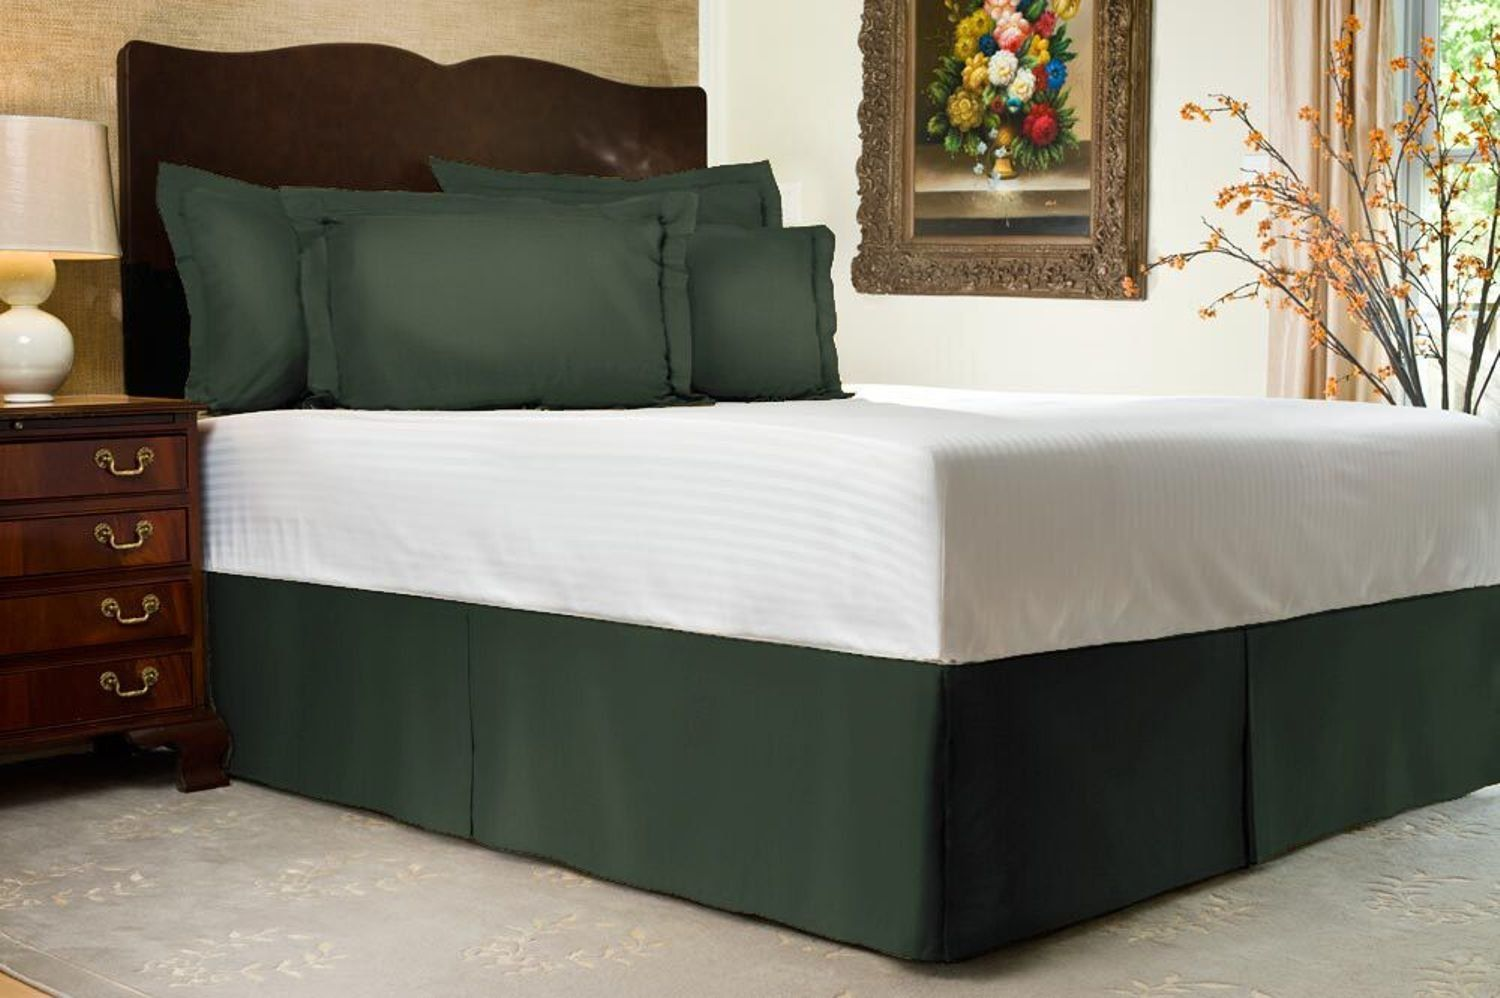 Shop Bedding Harmony Lane Tailored Bed Skirt 14 inch Drop